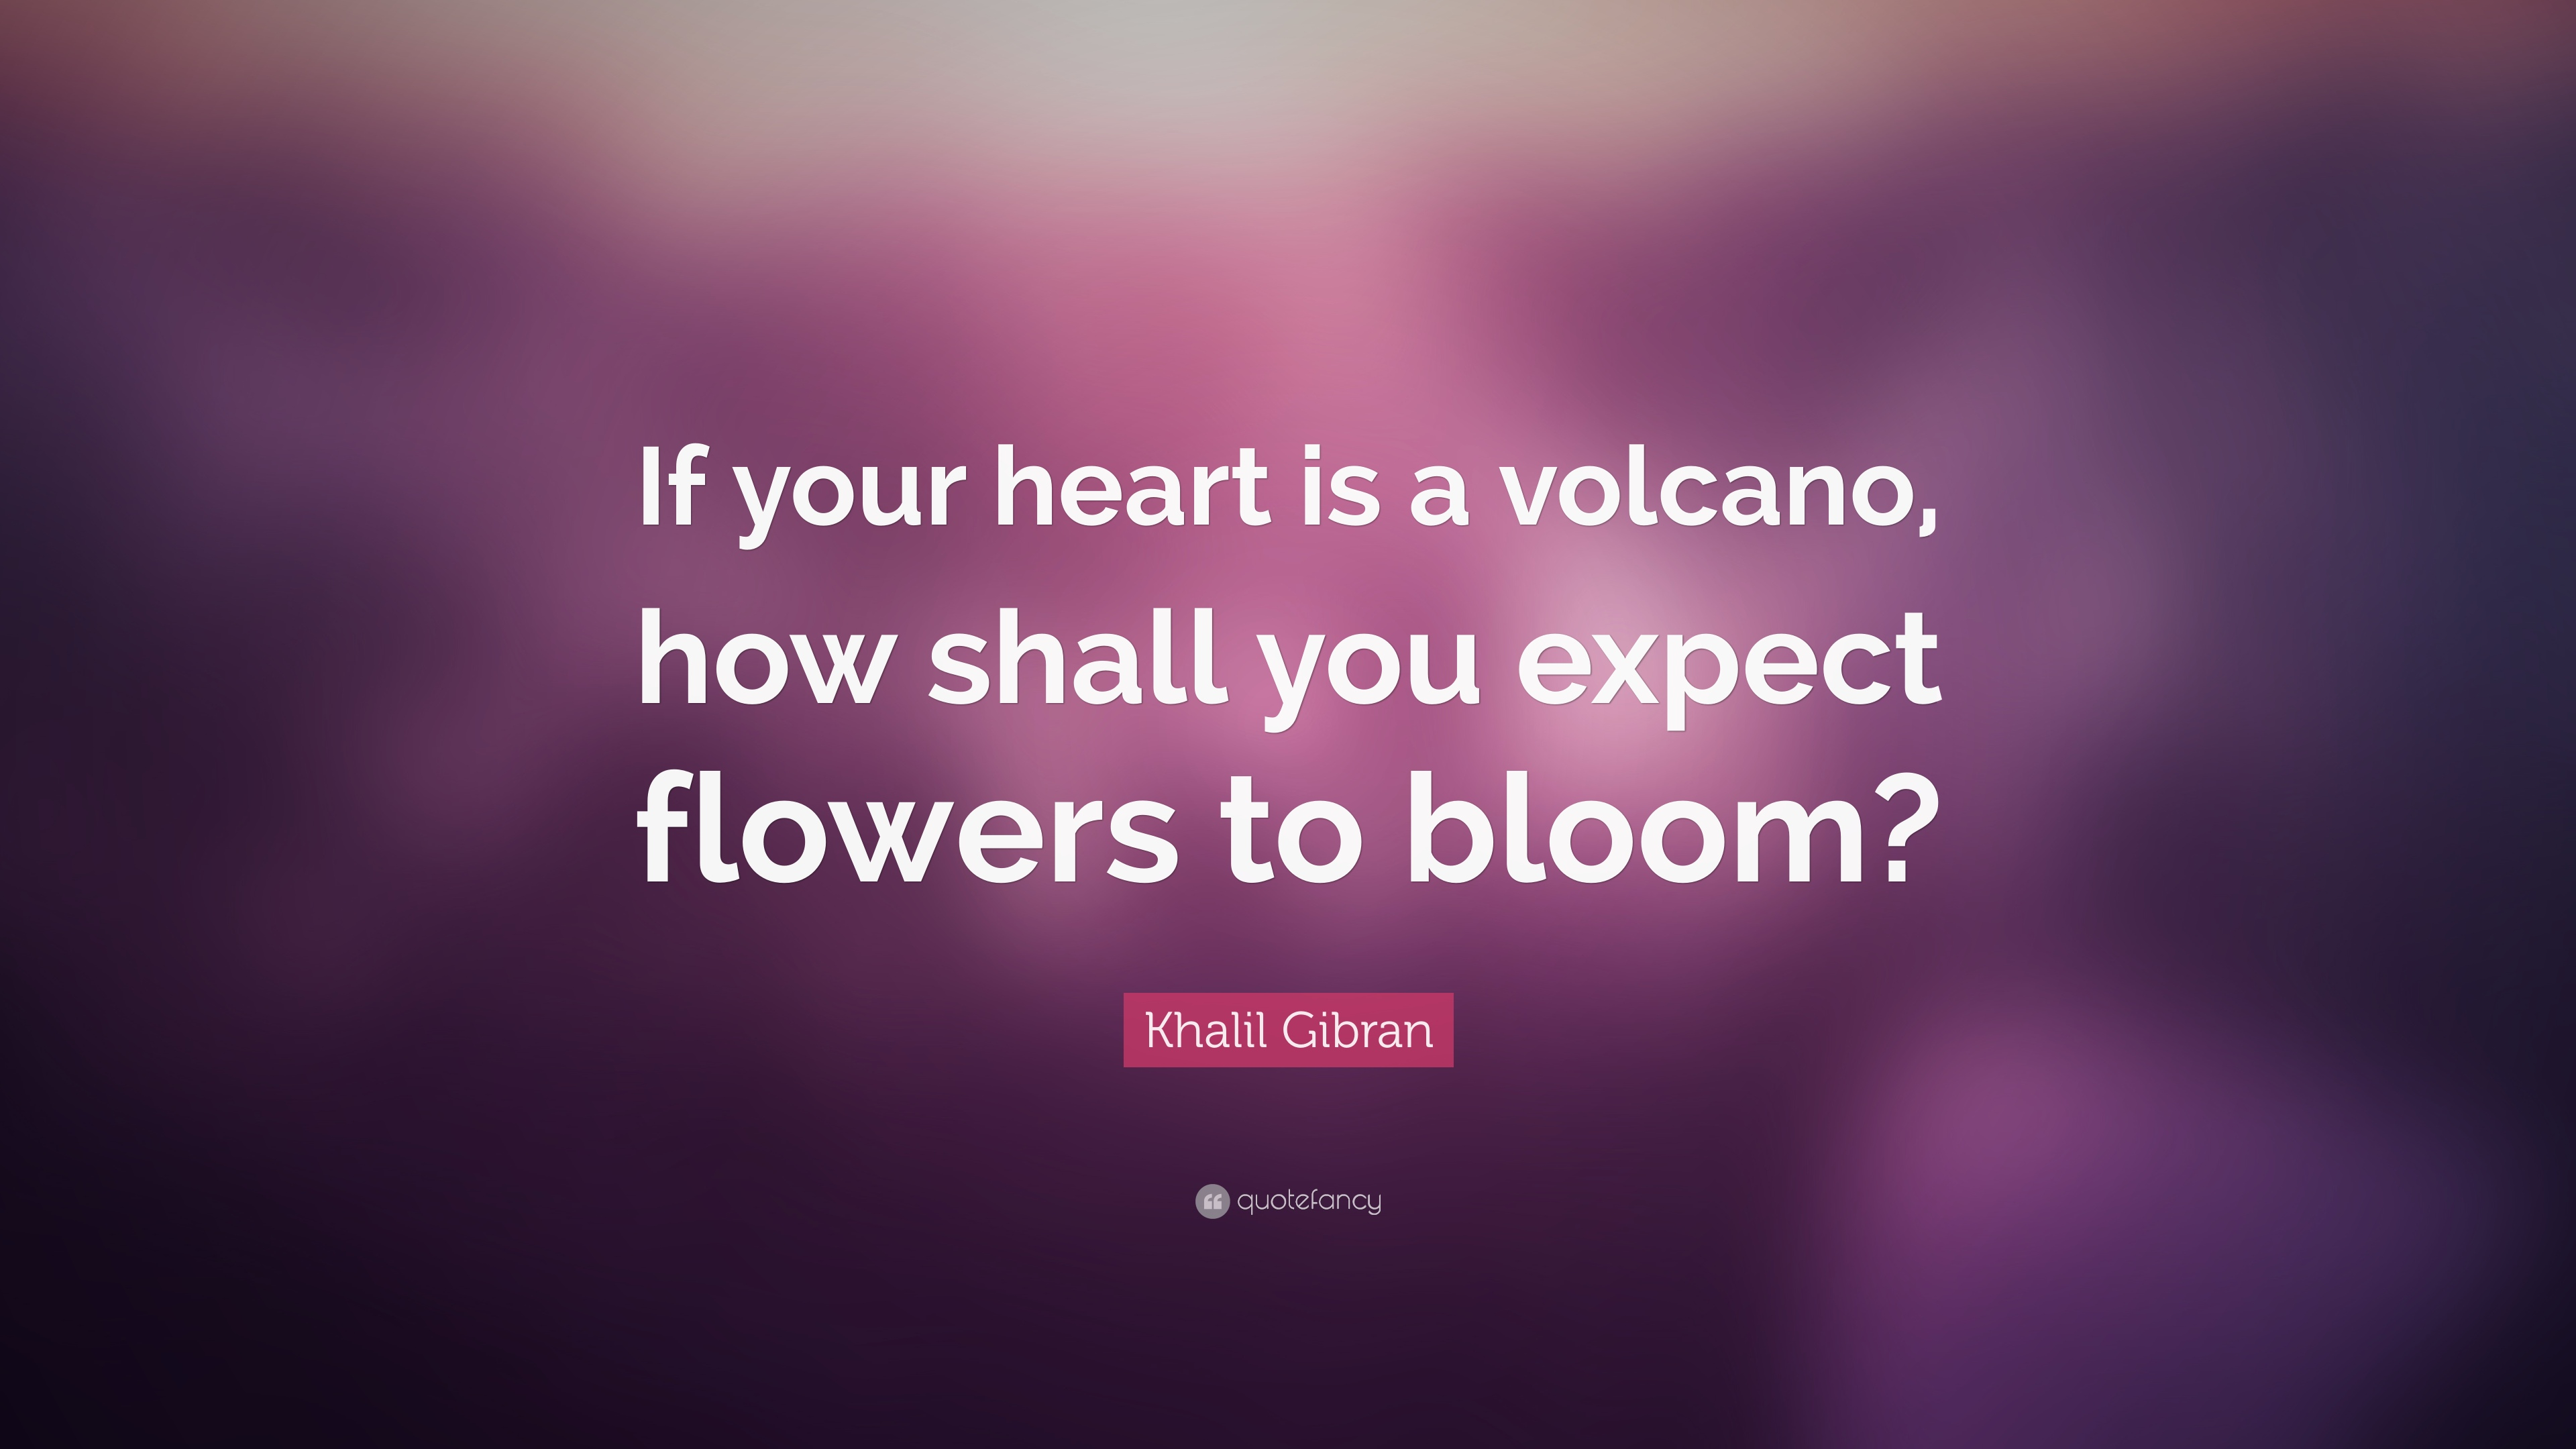 Anger Quotes: U201cIf Your Heart Is A Volcano, How Shall You Expect Flowers